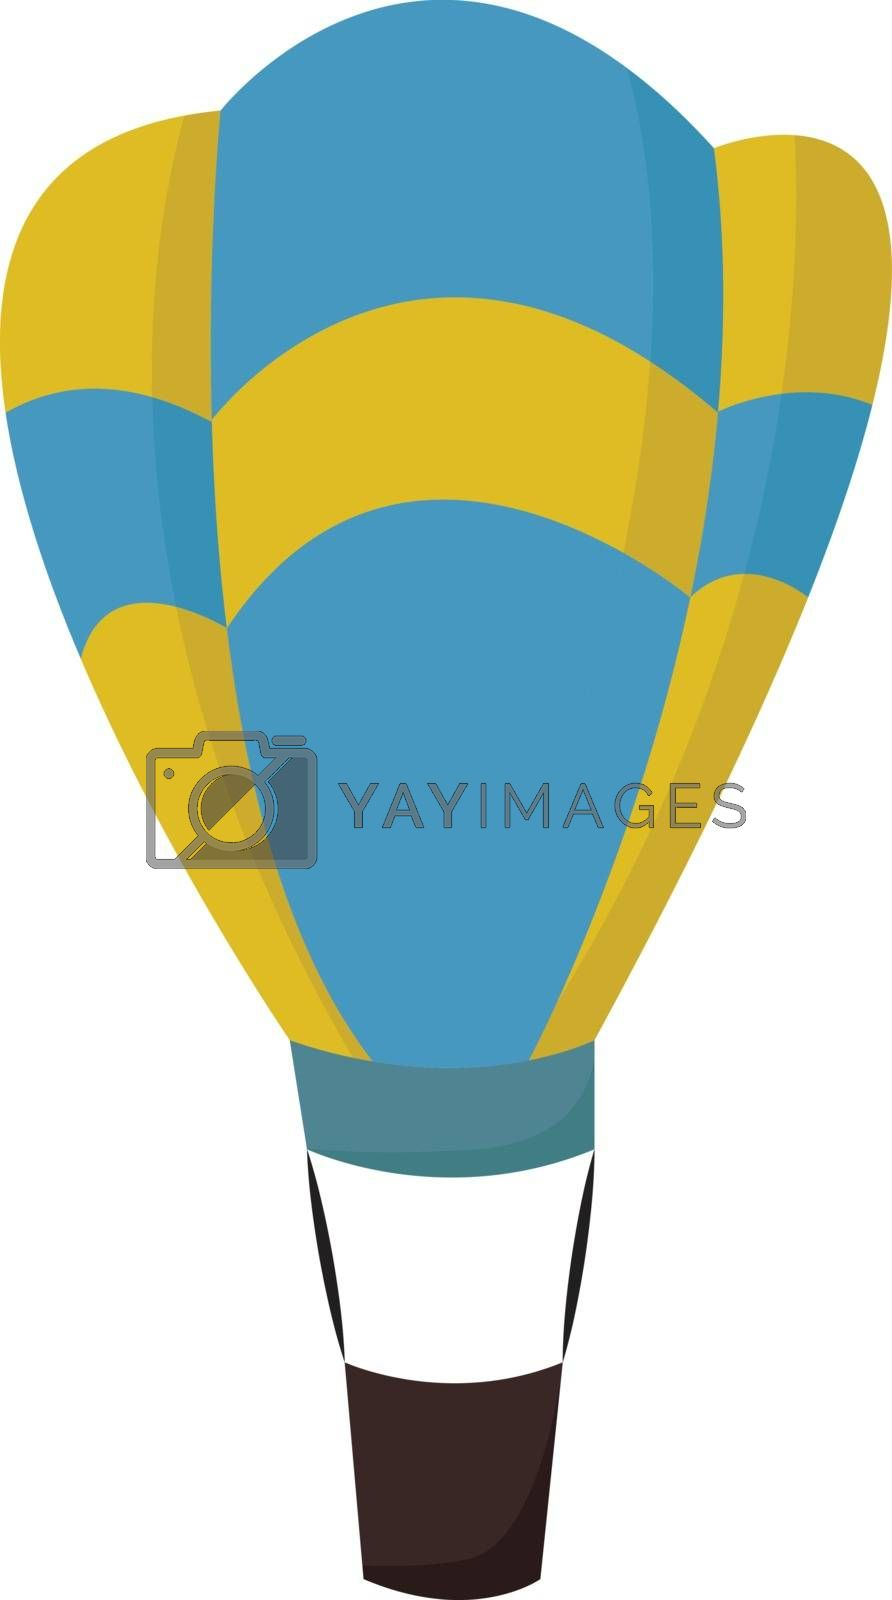 Royalty free image of A hot air balloon , vector or color illustration by Morphart